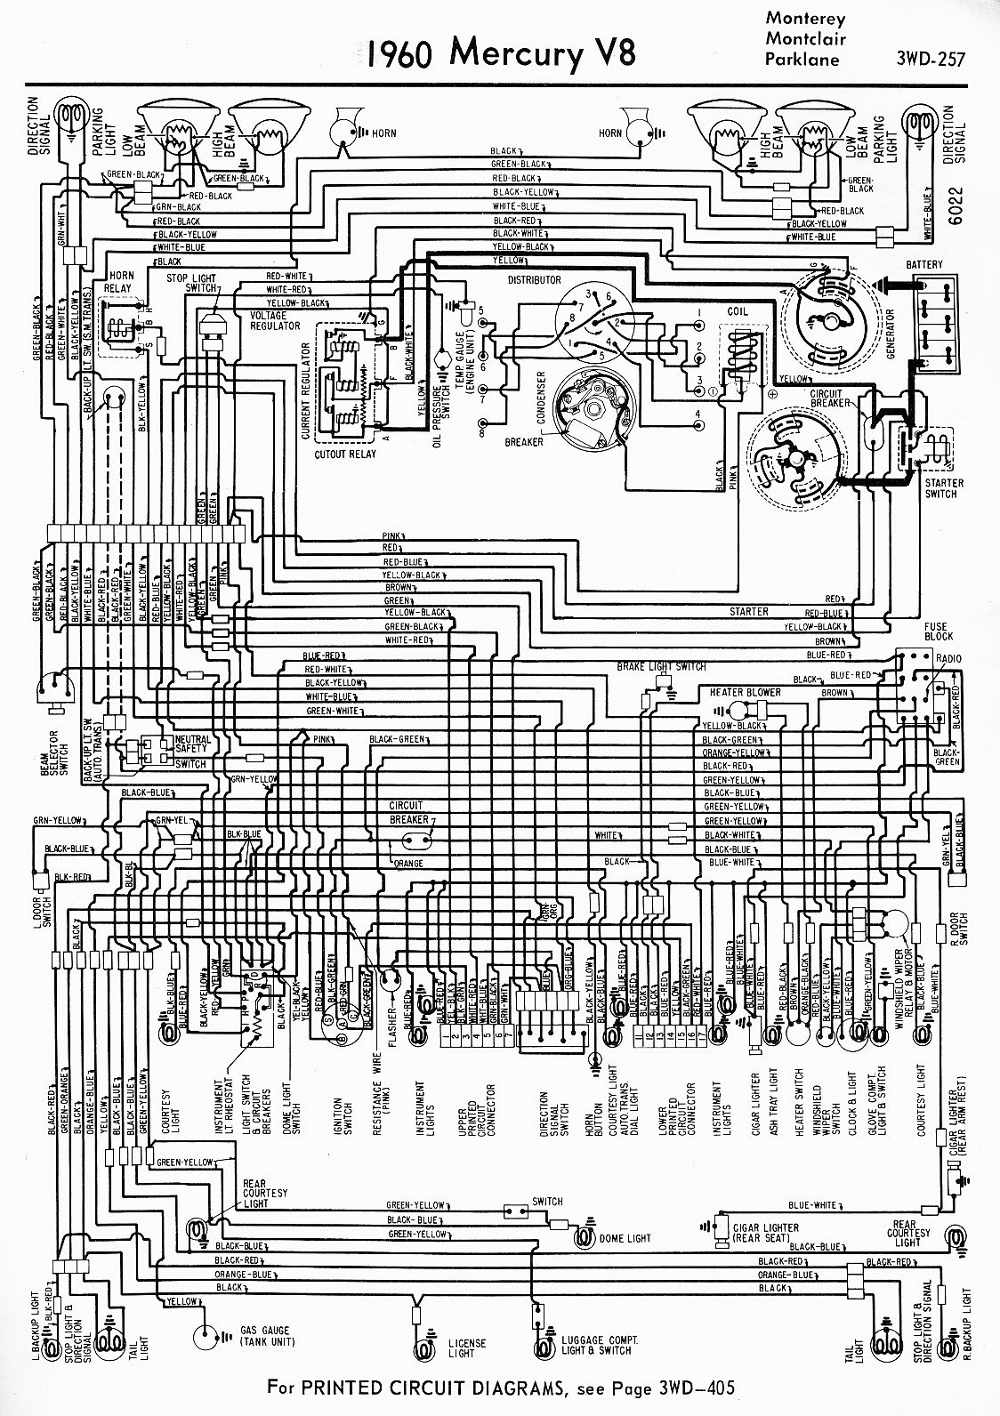 1955 Ford Wiring Schematic Electrical Diagram Schematics 8n For Lights Diagrams Ignition Switch 1954 Mercury